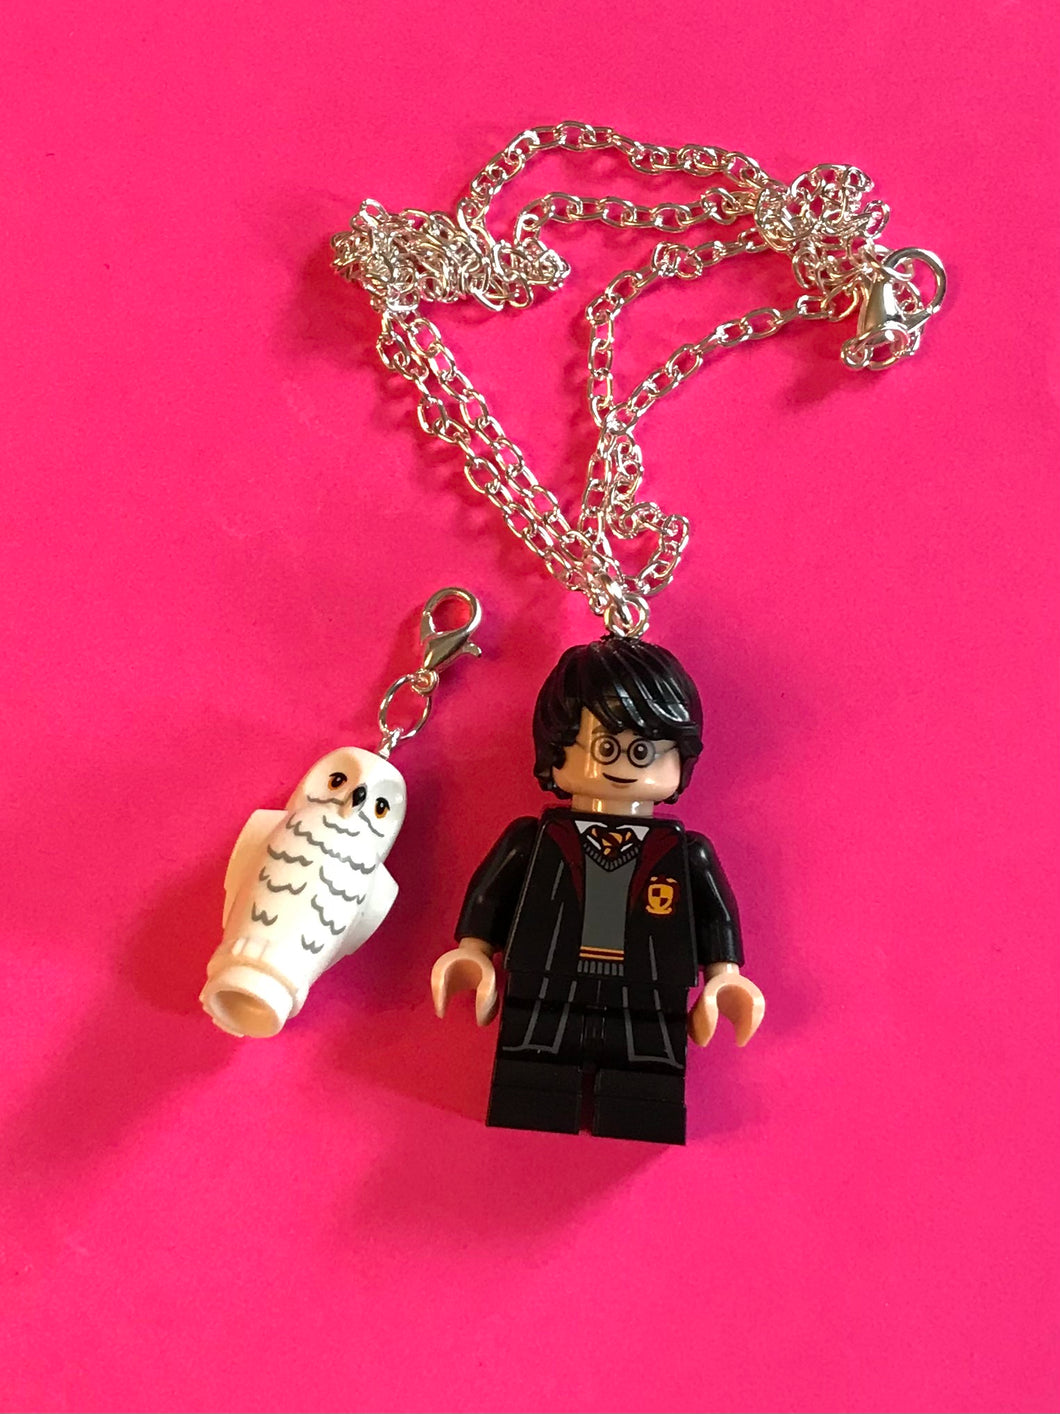 Lego Harry Potter Necklace